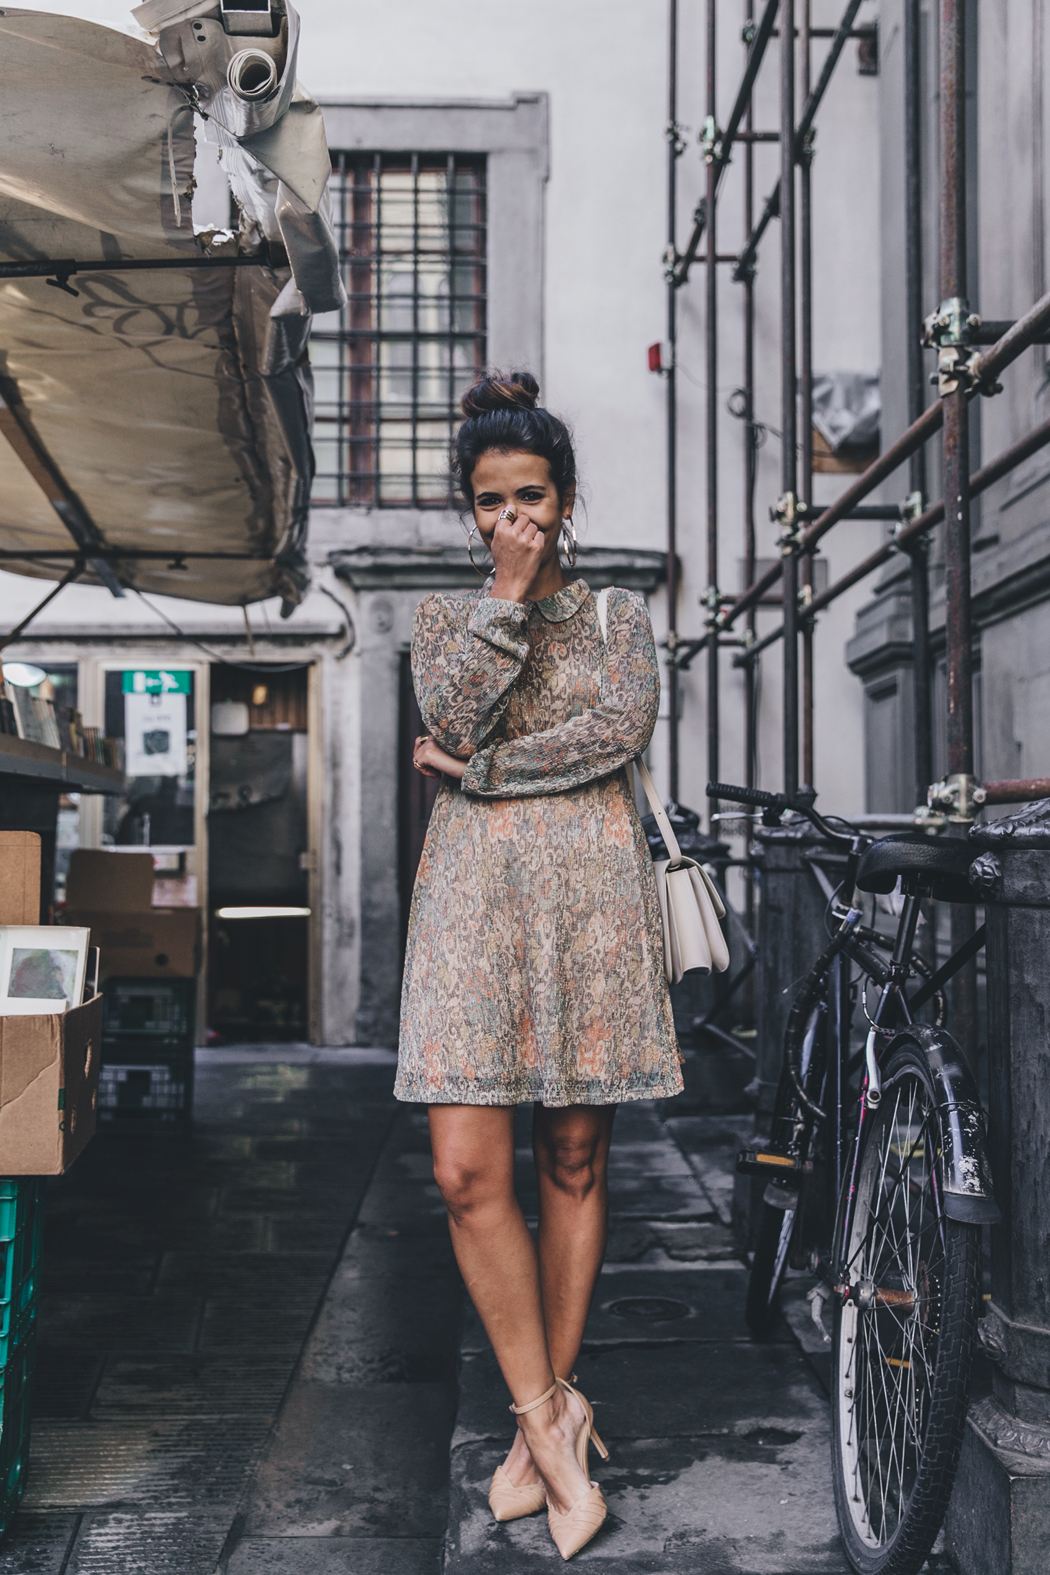 Asos_Dress-Florence-Party_Look-Topknot-Collage_Vintage-Hoop_Earrings-Outfit-Street_Style-37